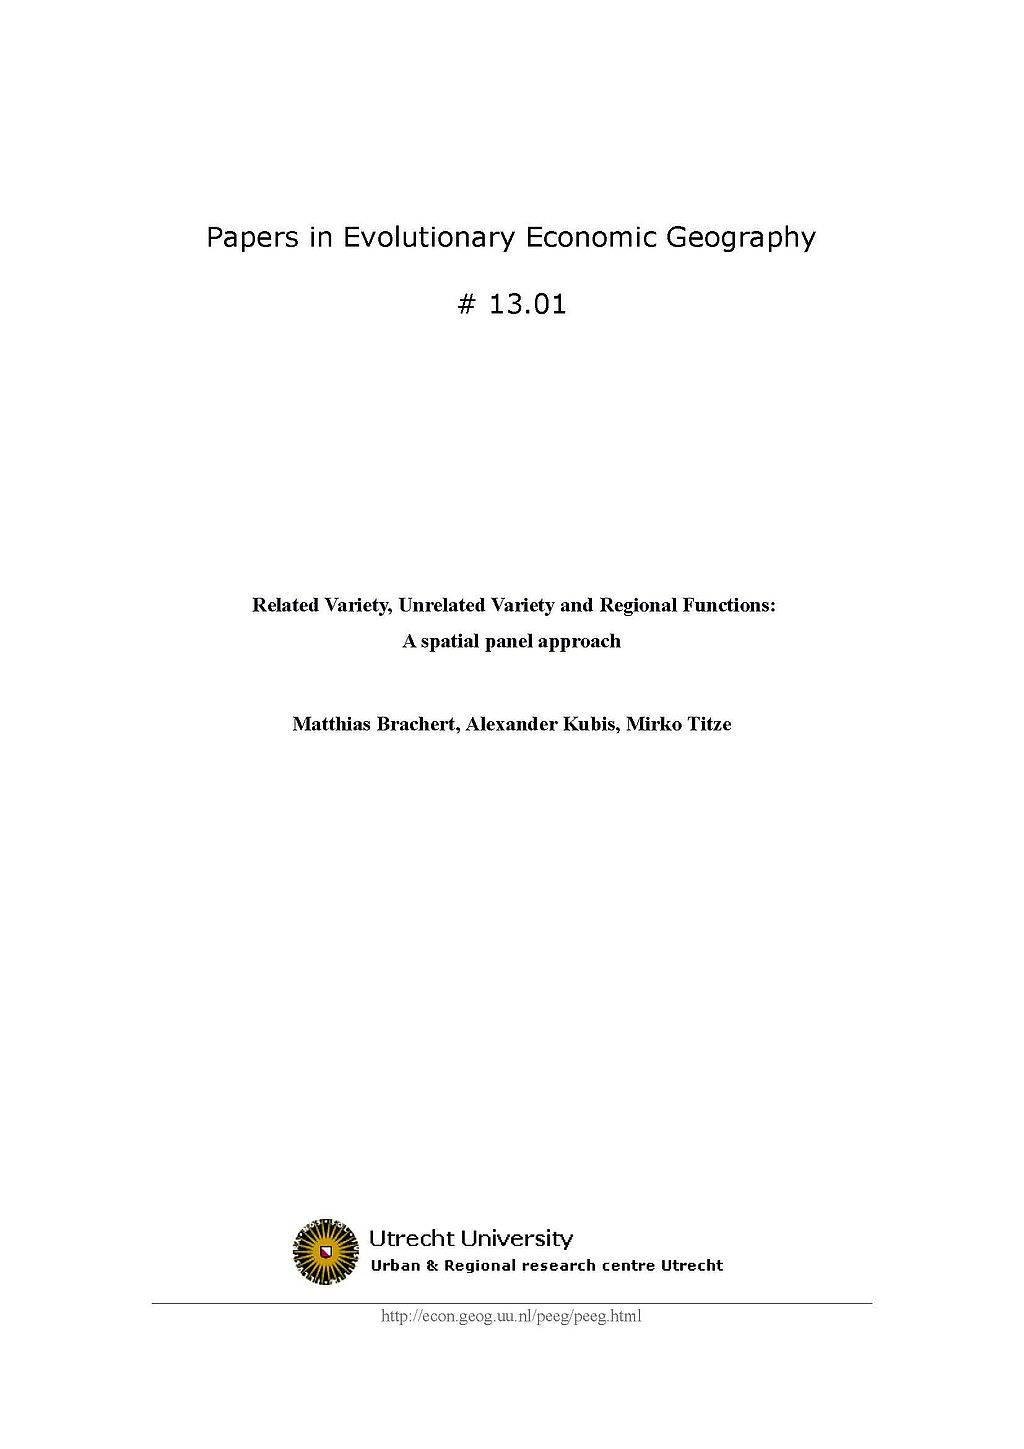 cover_Papers-in-Evolutionary-Economic-Geography_2013-01.jpg